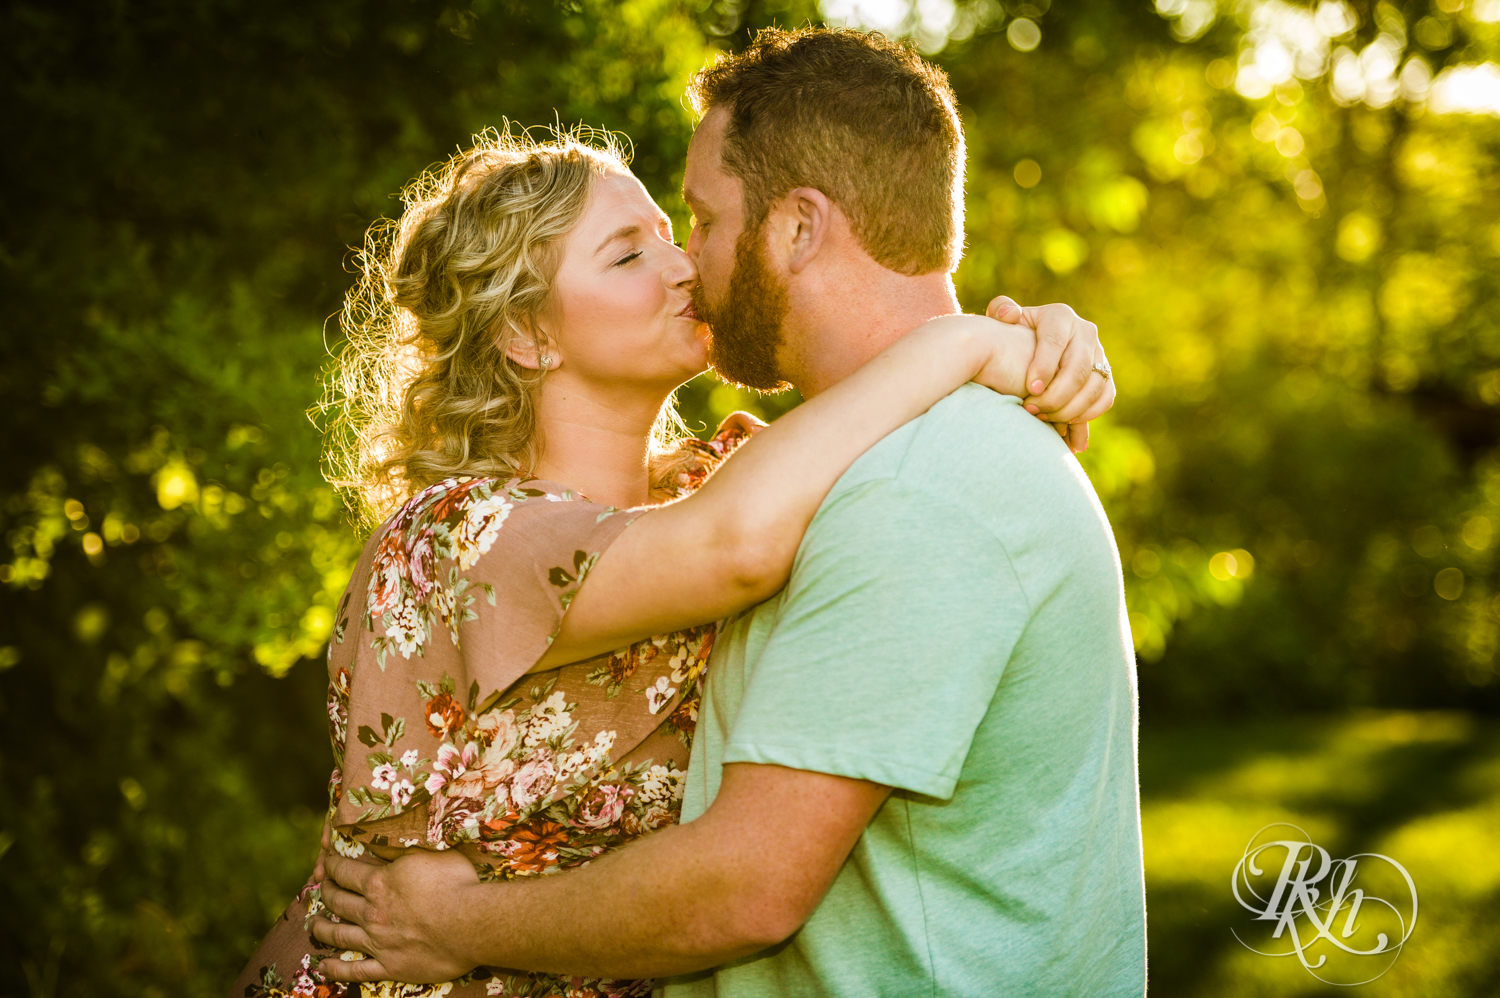 Constance & Josh - Minnesota Engagement Photography - Lebanon Hills Regional Park - RKH Images - Blog (3 of 18).jpg